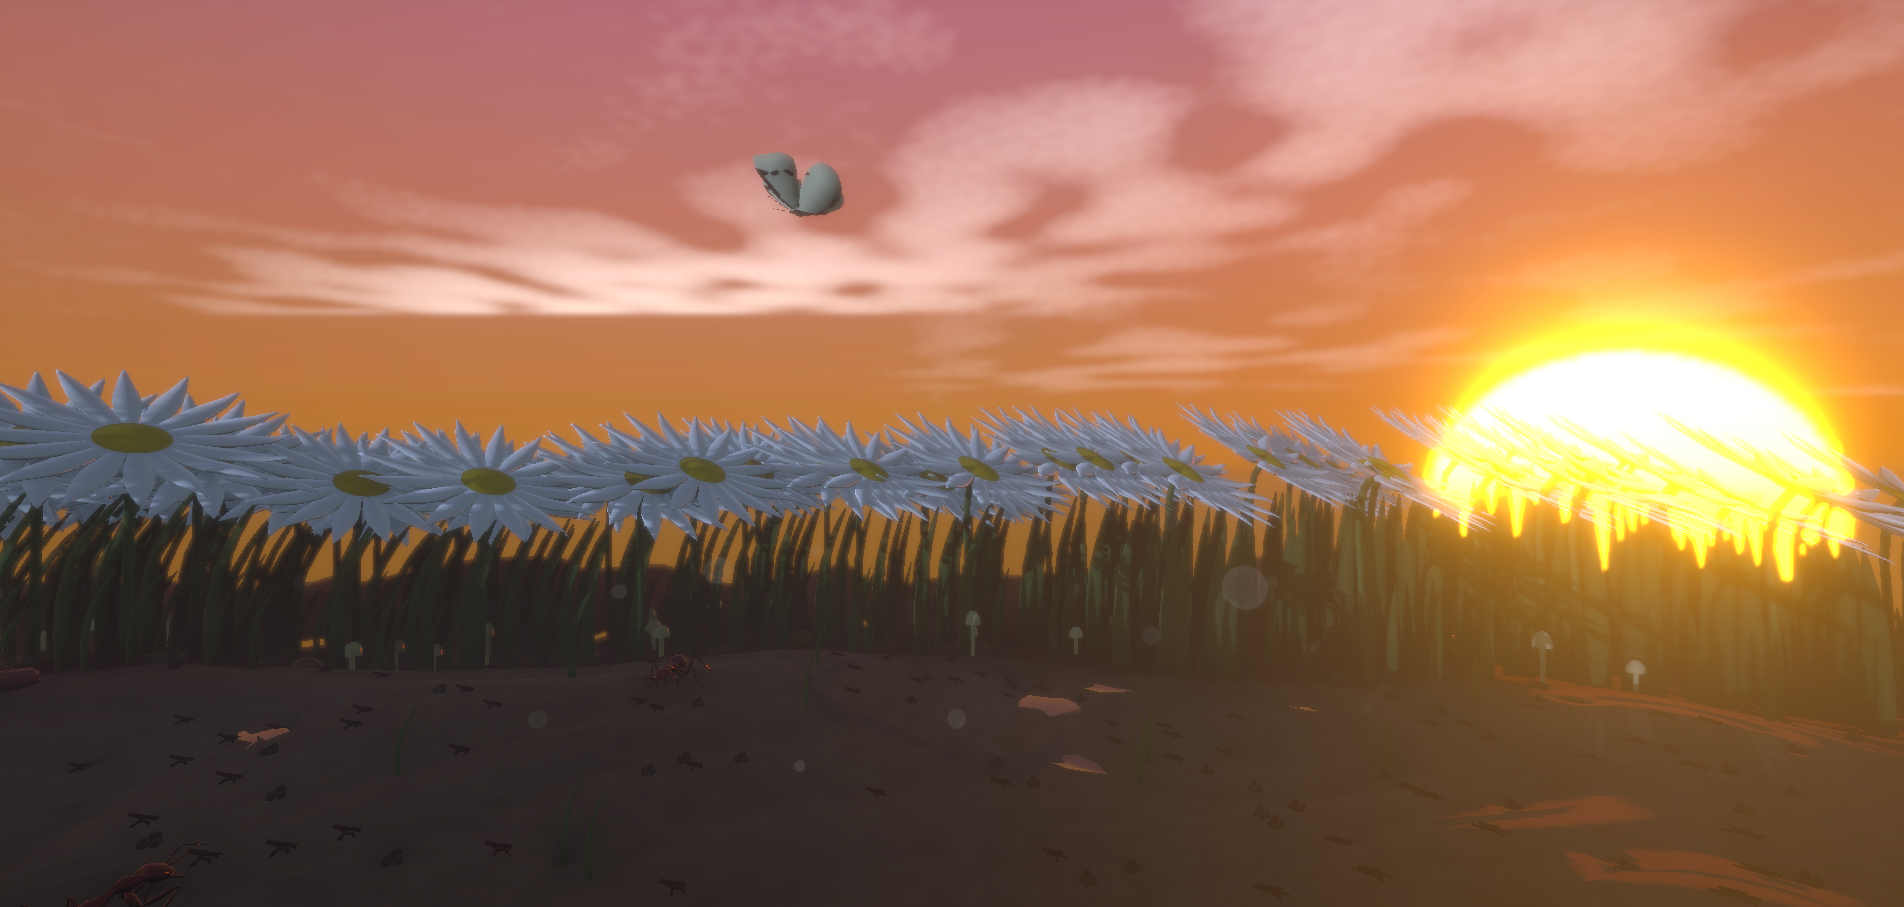 Header Image, screenshot from game Little Bit Lost. It shows a warm sun dipping below the horizon, over a bed of daisies.